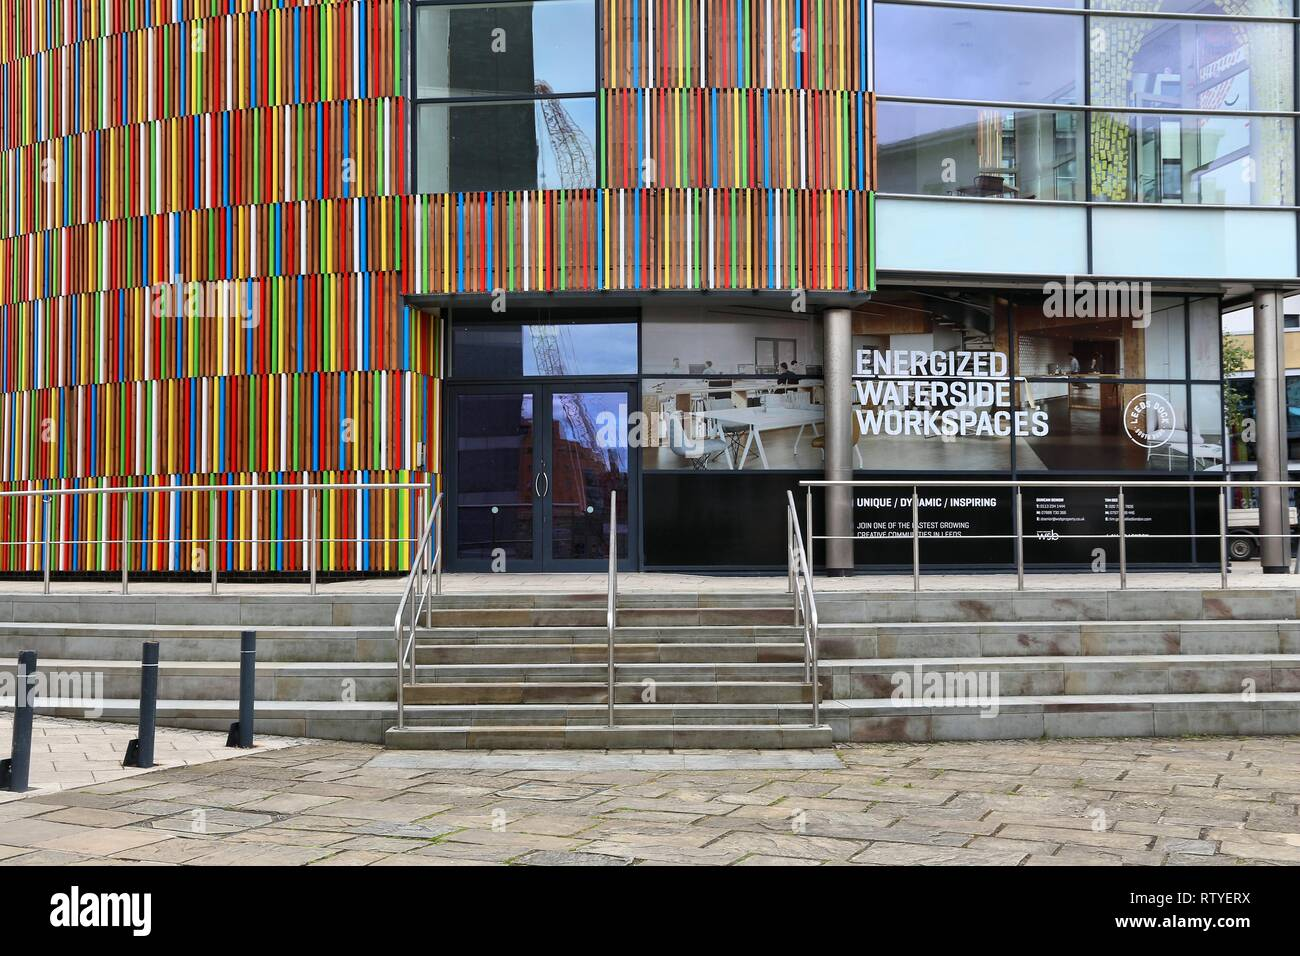 LEEDS, UK - JULY 11, 2016: Modern architecture of Leeds Dock mixed developement area in Leeds, UK. The area is owned by Allied London property company - Stock Image